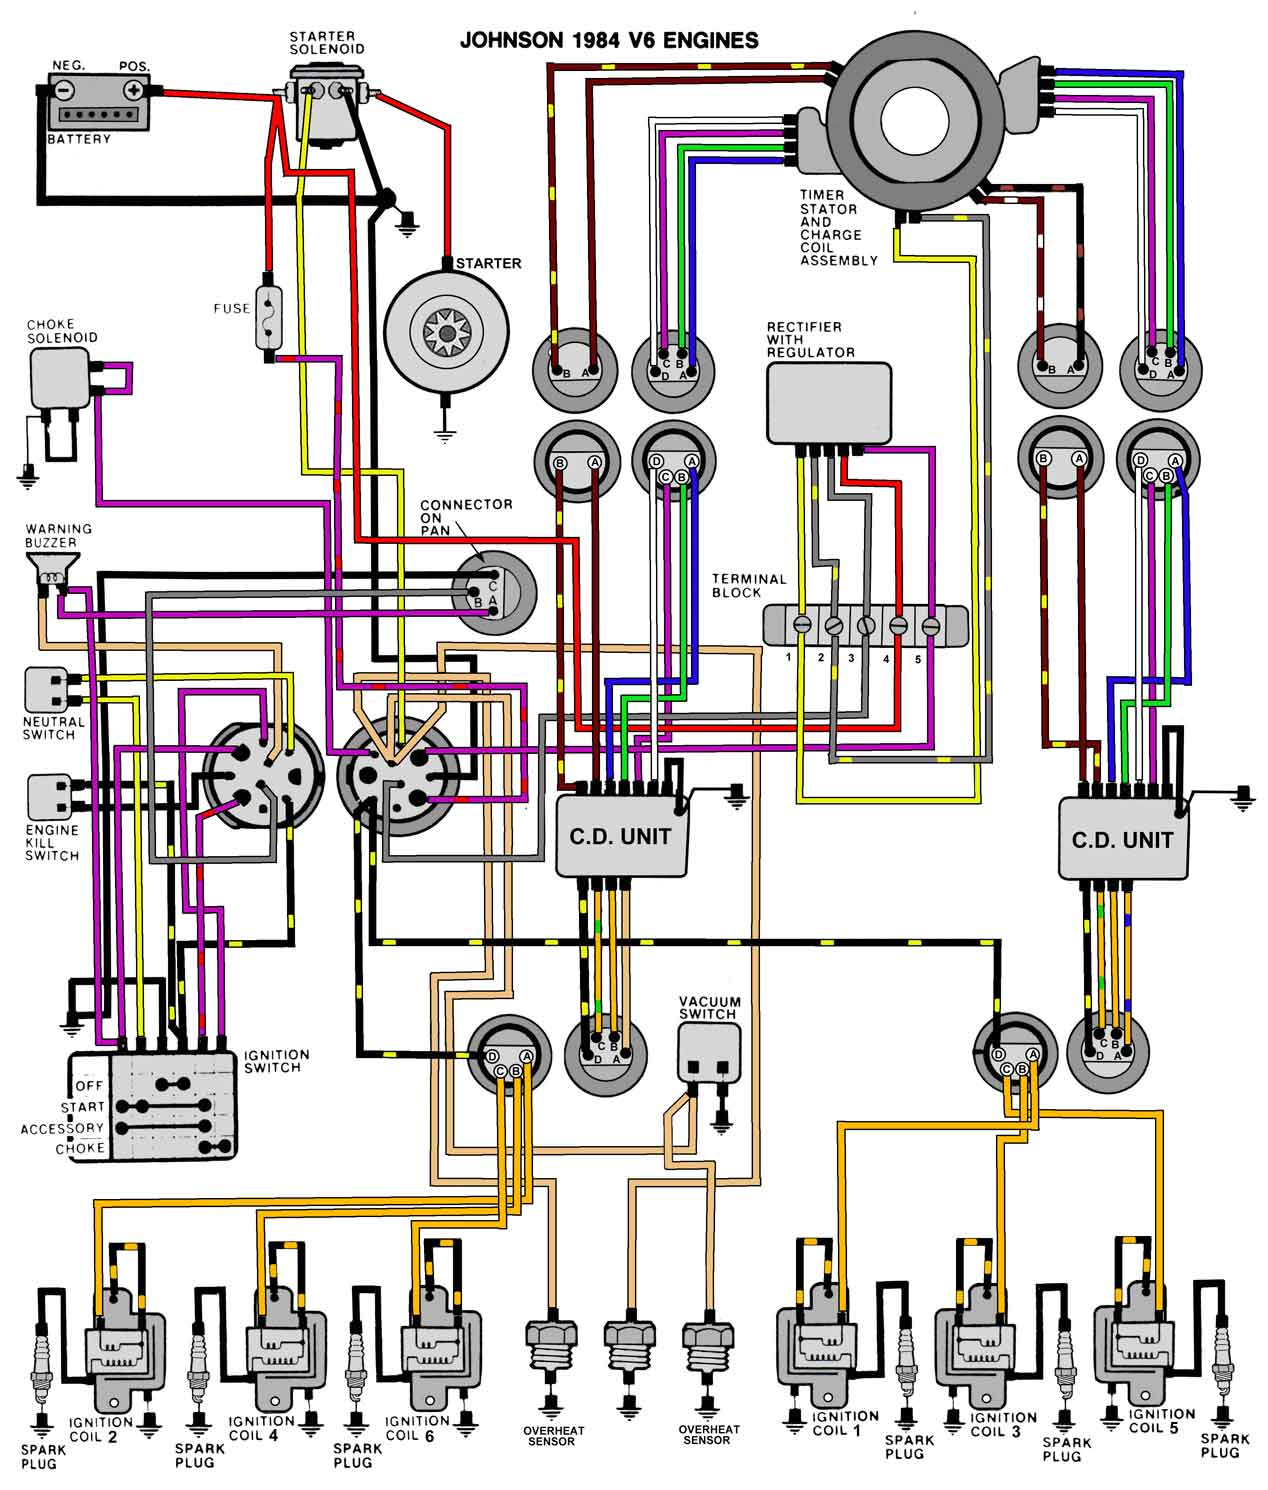 hight resolution of evinrude johnson outboard wiring diagrams mastertech marine johnson engine wiring